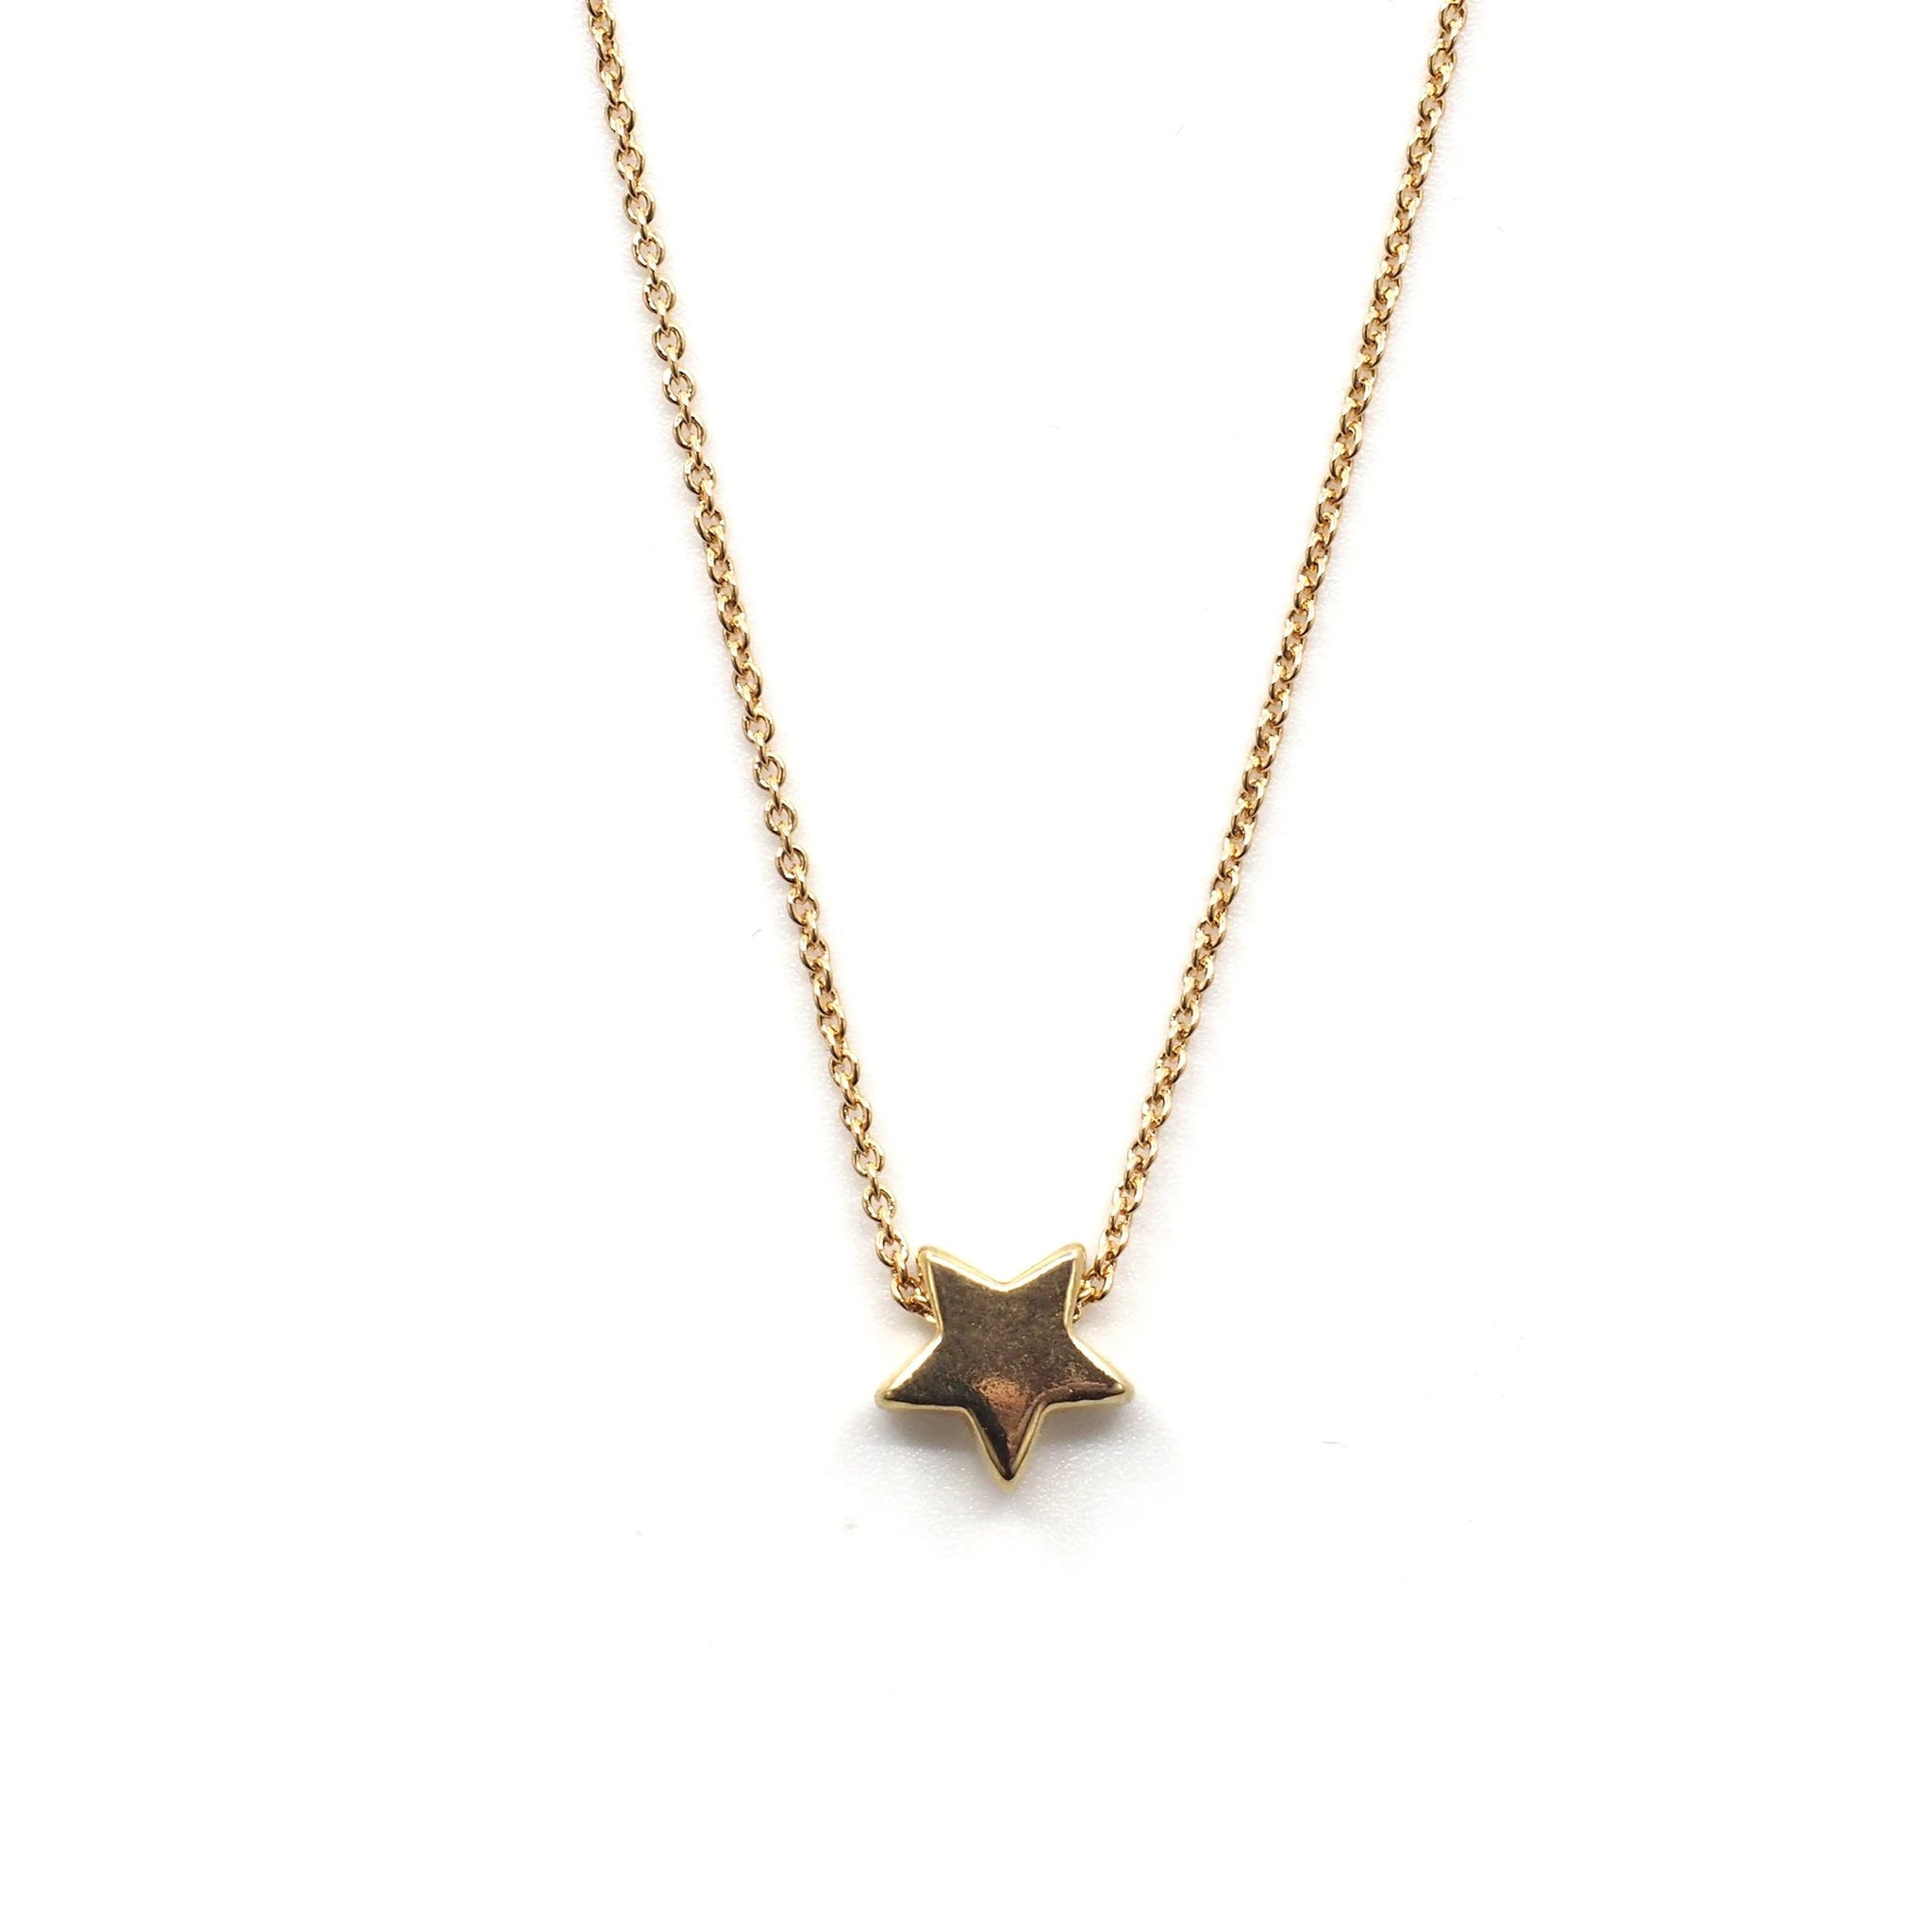 The Stella Necklace - 100% Profits Donated